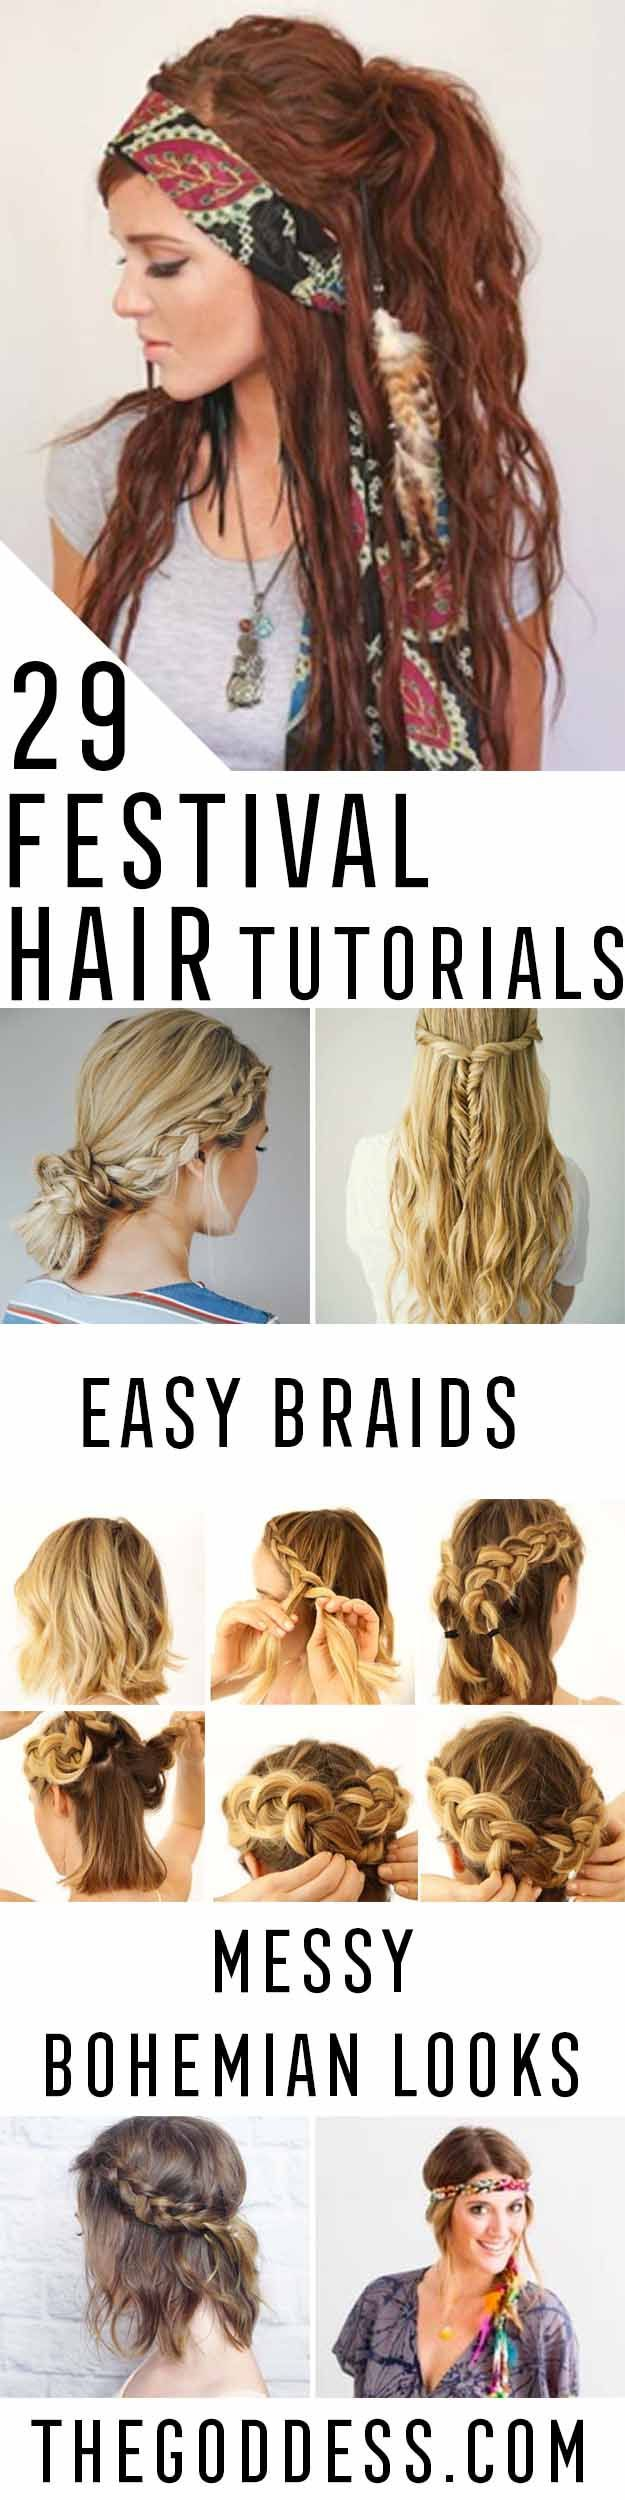 Festival Hair Tutorials - Short Quick and Easy Tutorial Guides and How Tos for B...